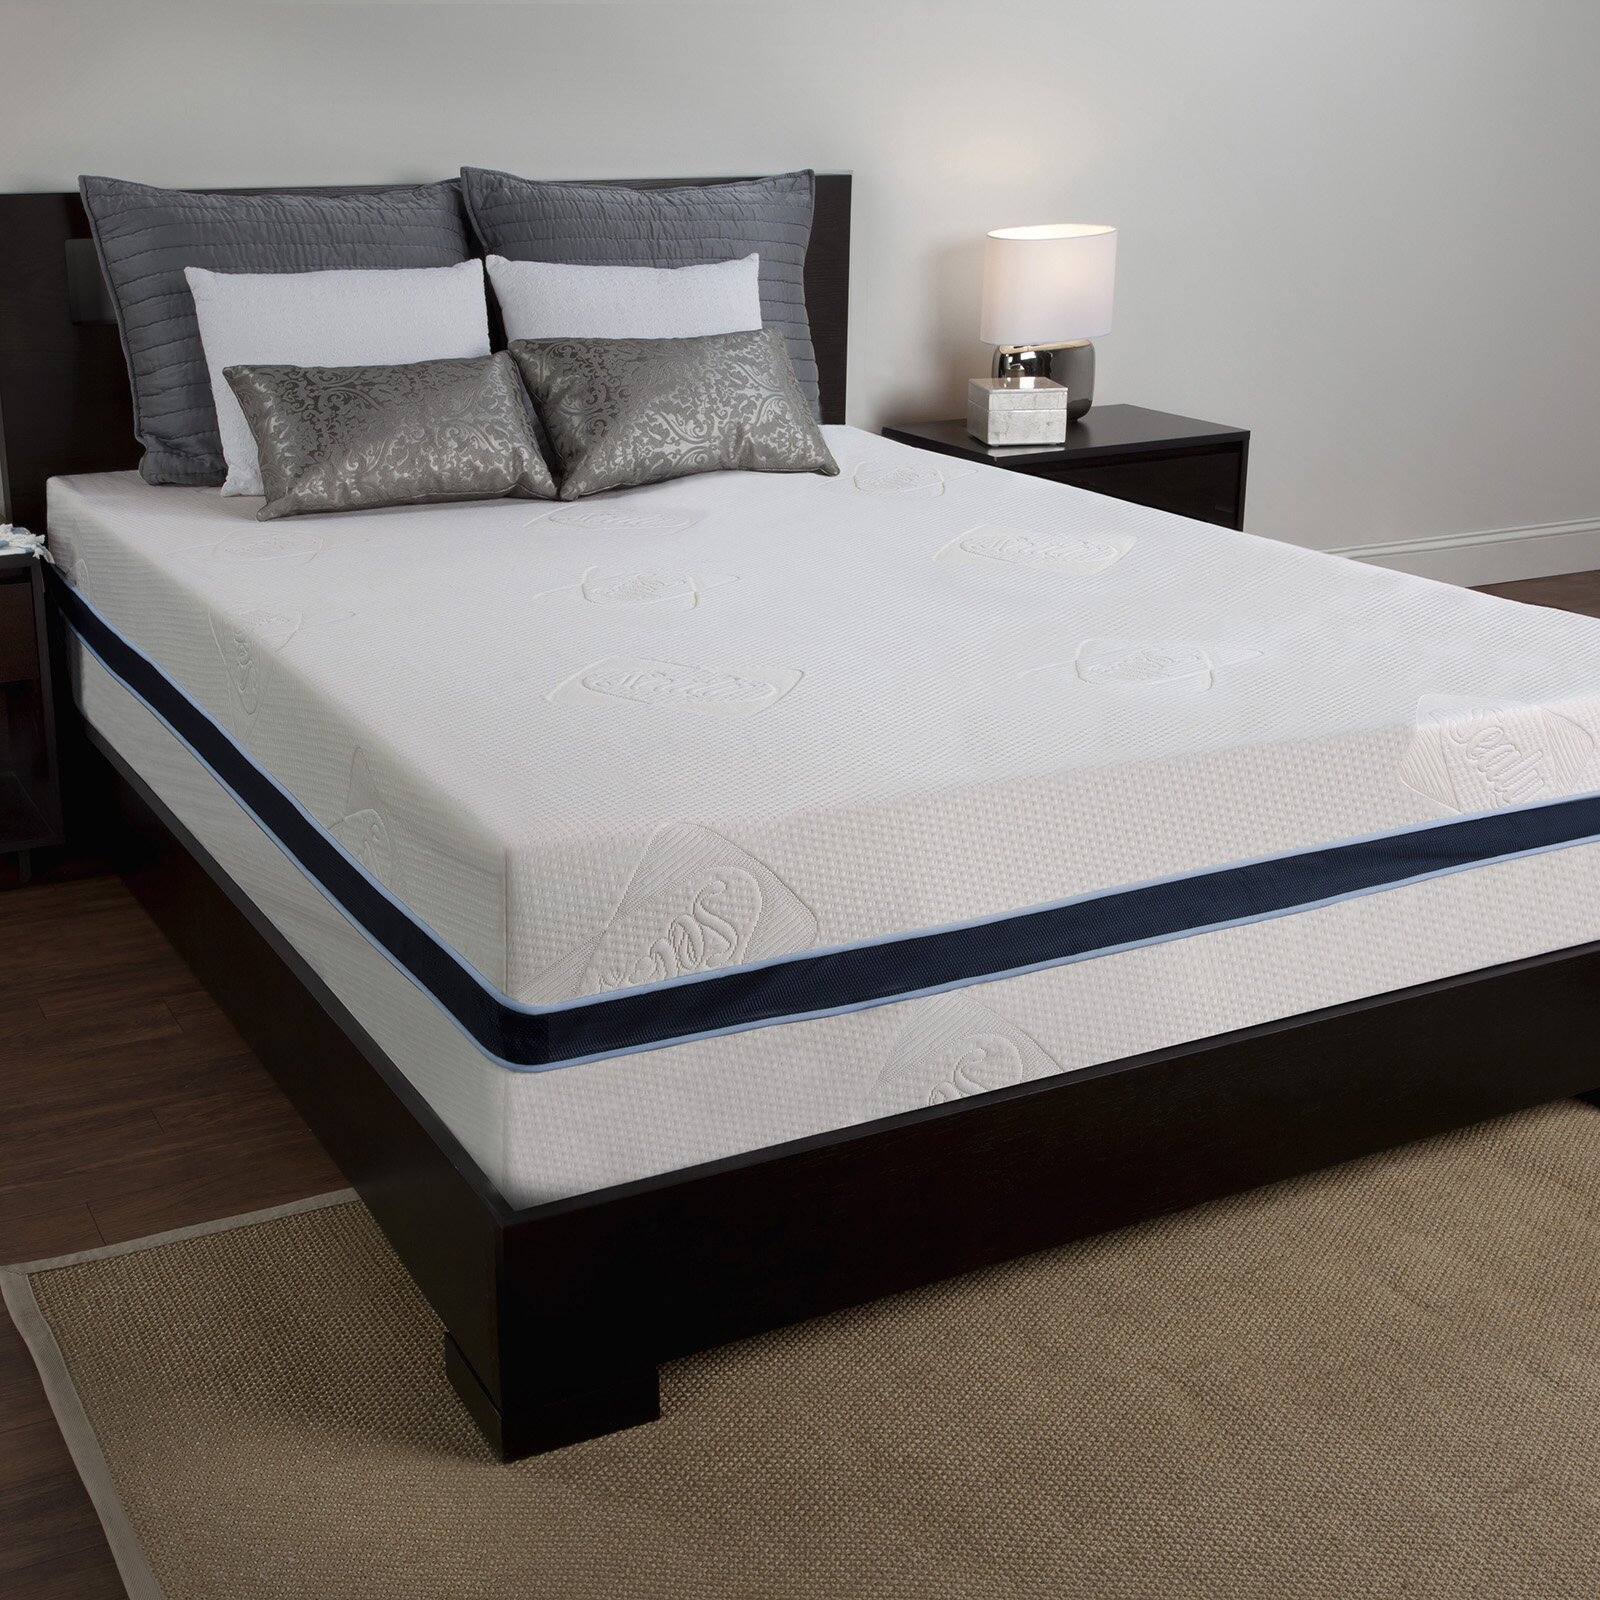 Sealy memory foam mattress reviews